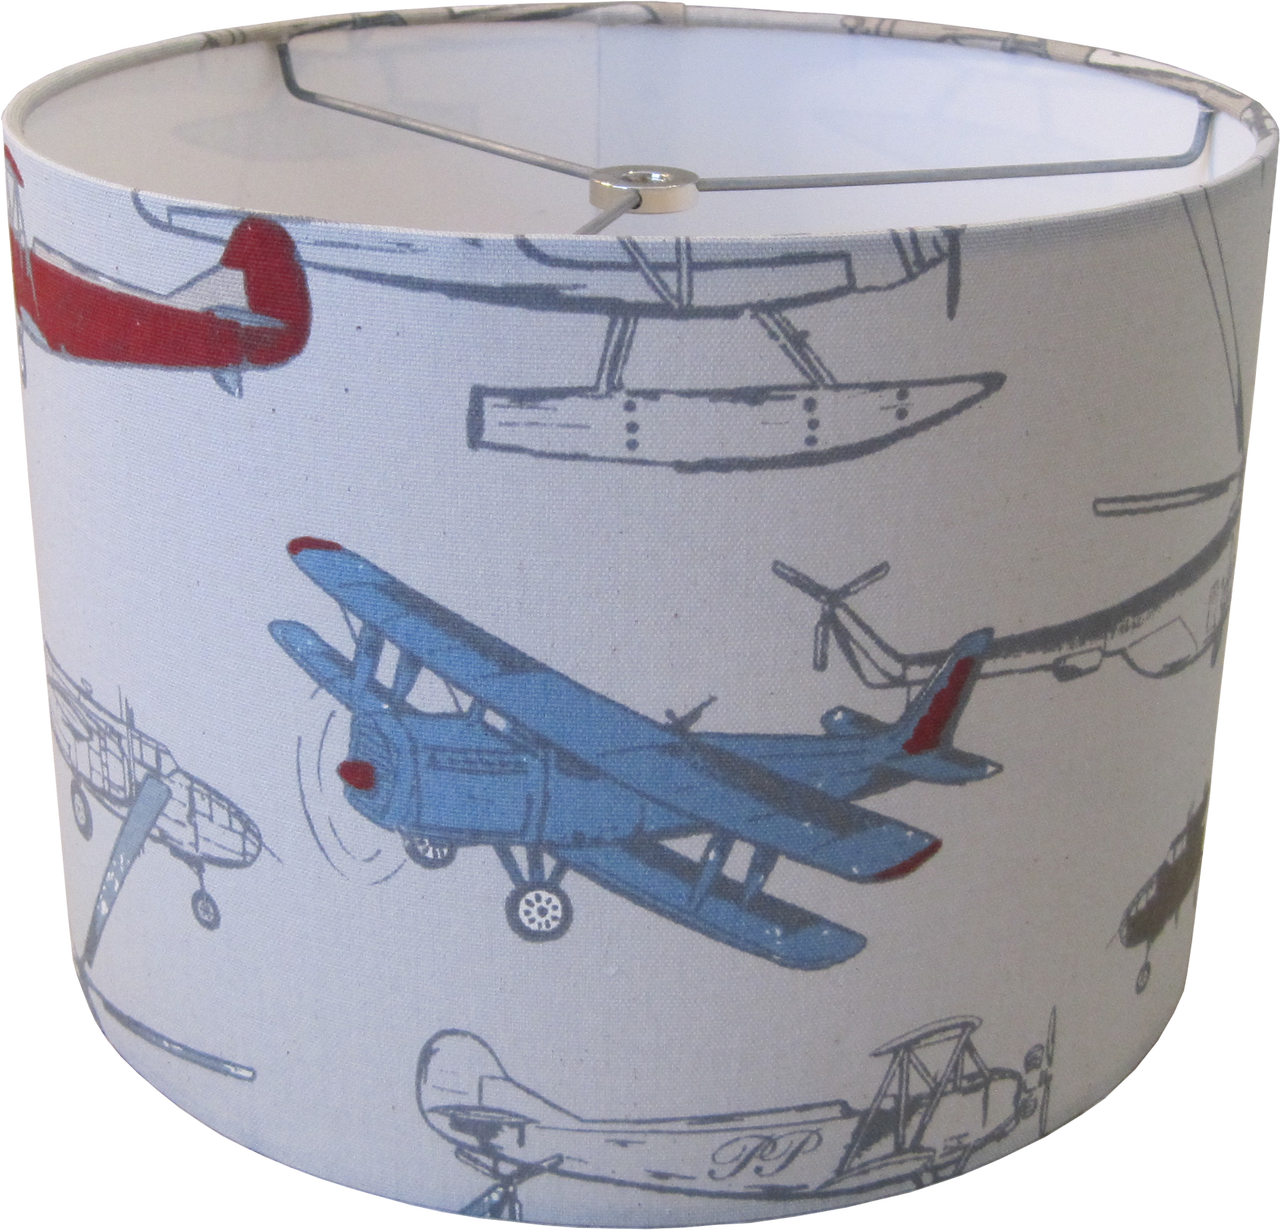 Lampshapes Airplane Lamp Shade Vintage Airplanes 75 00 Http